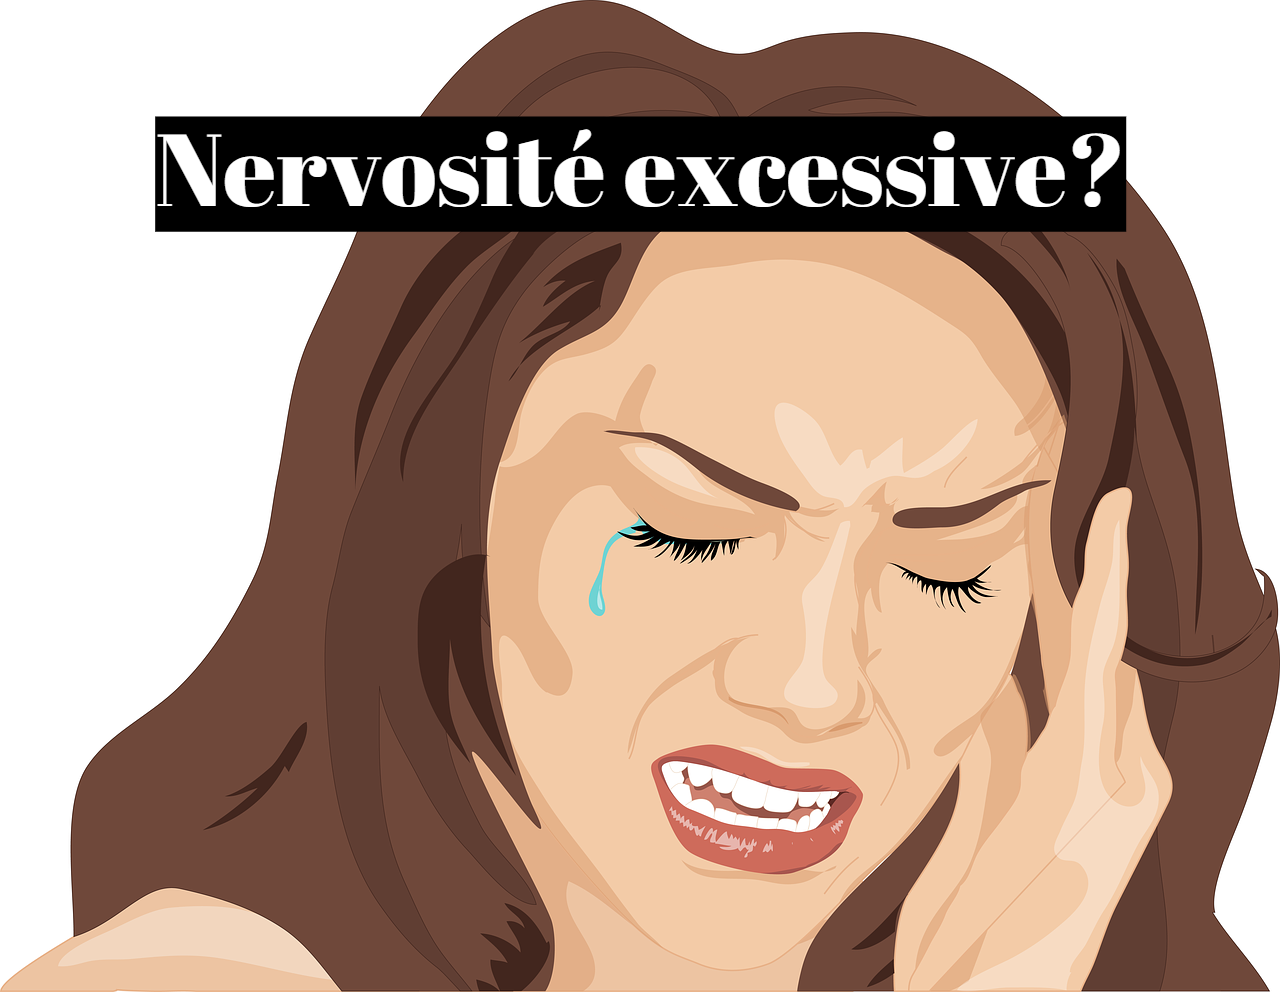 Nervosité excessive: comment se calmer naturellement?